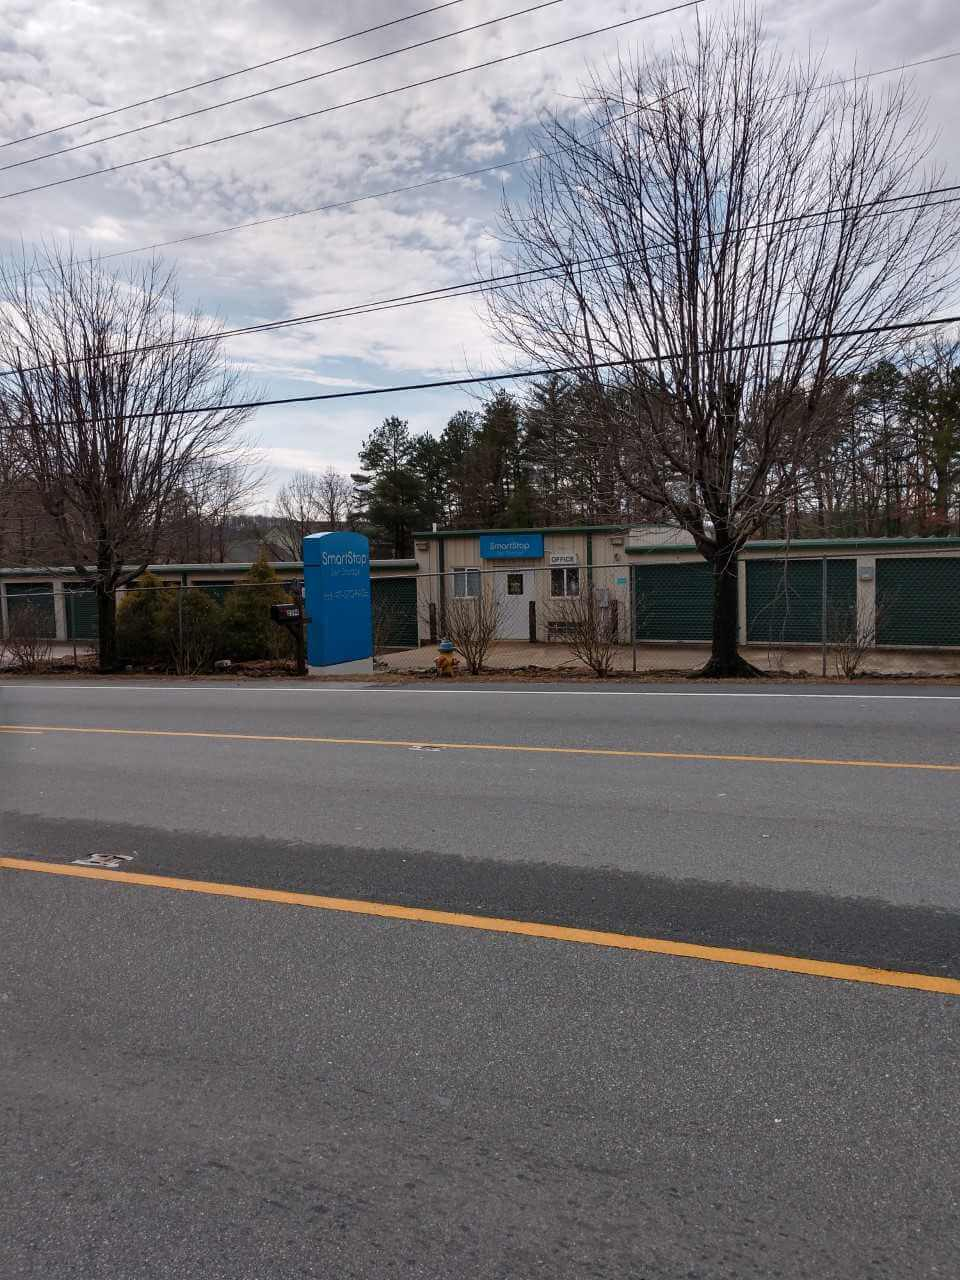 Street view of Smart Stop self storage facility located at 2594 Sweeten Creek Road, Asheville North Carolina